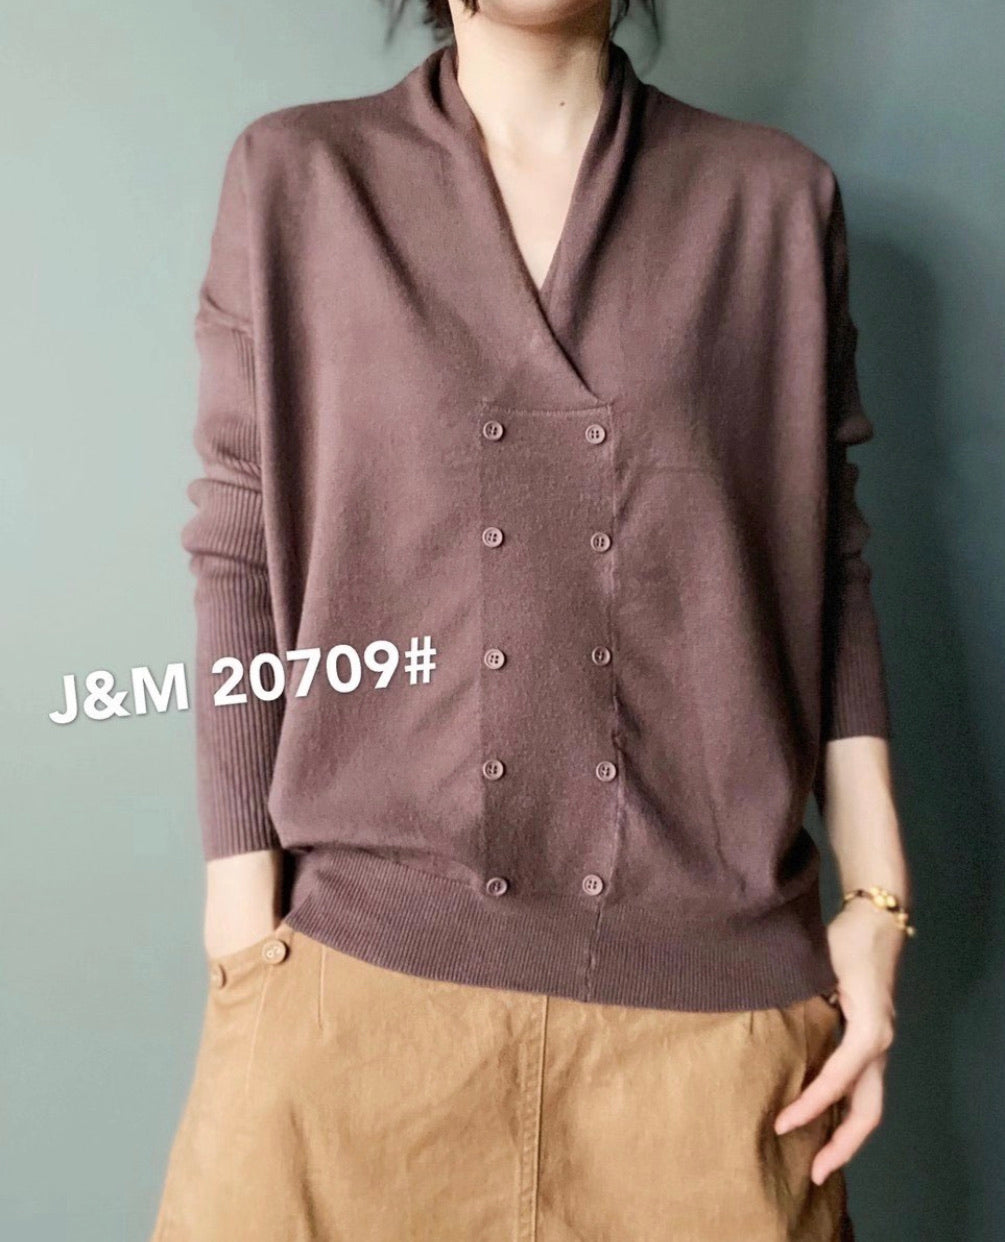 J.M. 20709 Button Top 40% Cotton, 40% Modal, 20% Polyester